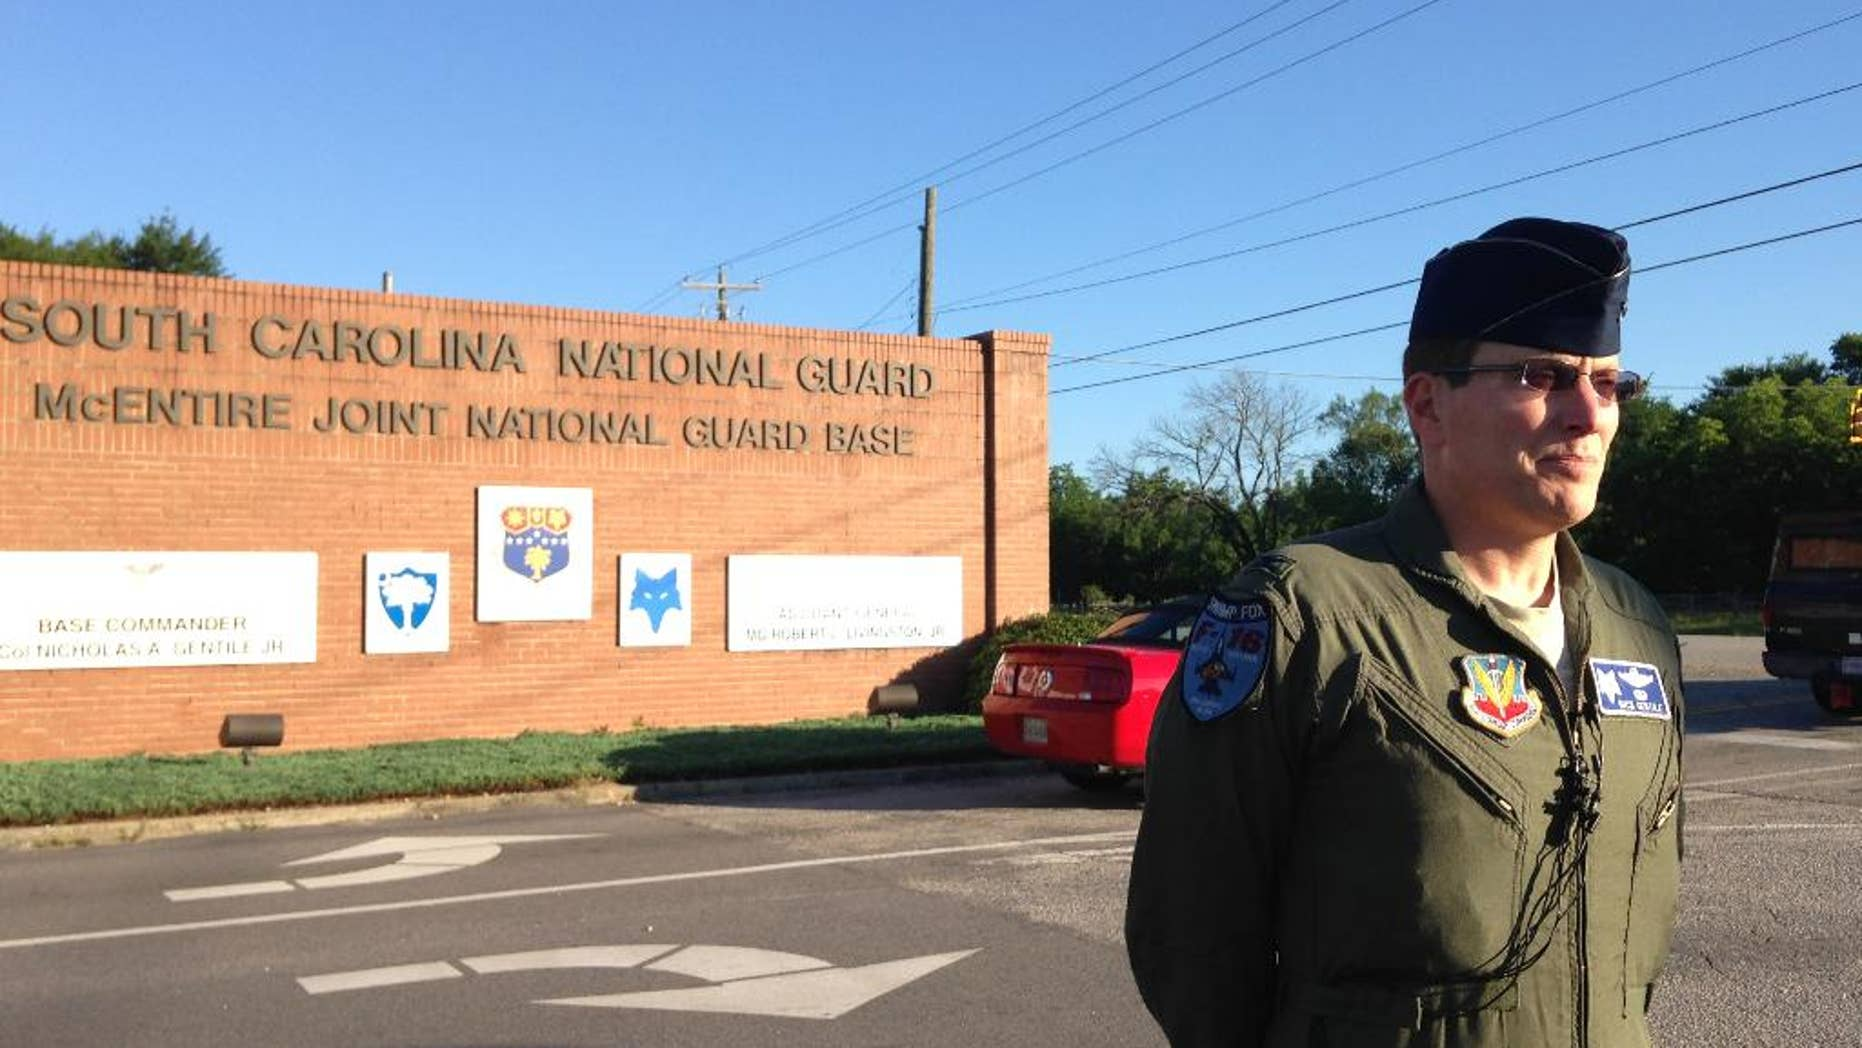 Base commander Col. Nicholas Gentile speaks with reporters outside McEntire Joint National Guard Base in Eastover, SC., Wednesday June 8, 2016. Two F-16C South Carolina Air National Guard jets collided over eastern Georgia, Tuesday evening. Gentile says the planes were totally destroyed, but the pilots ejected and survived, and have returned to South Carolina. (AP Photo/Susanne M. Schafer)